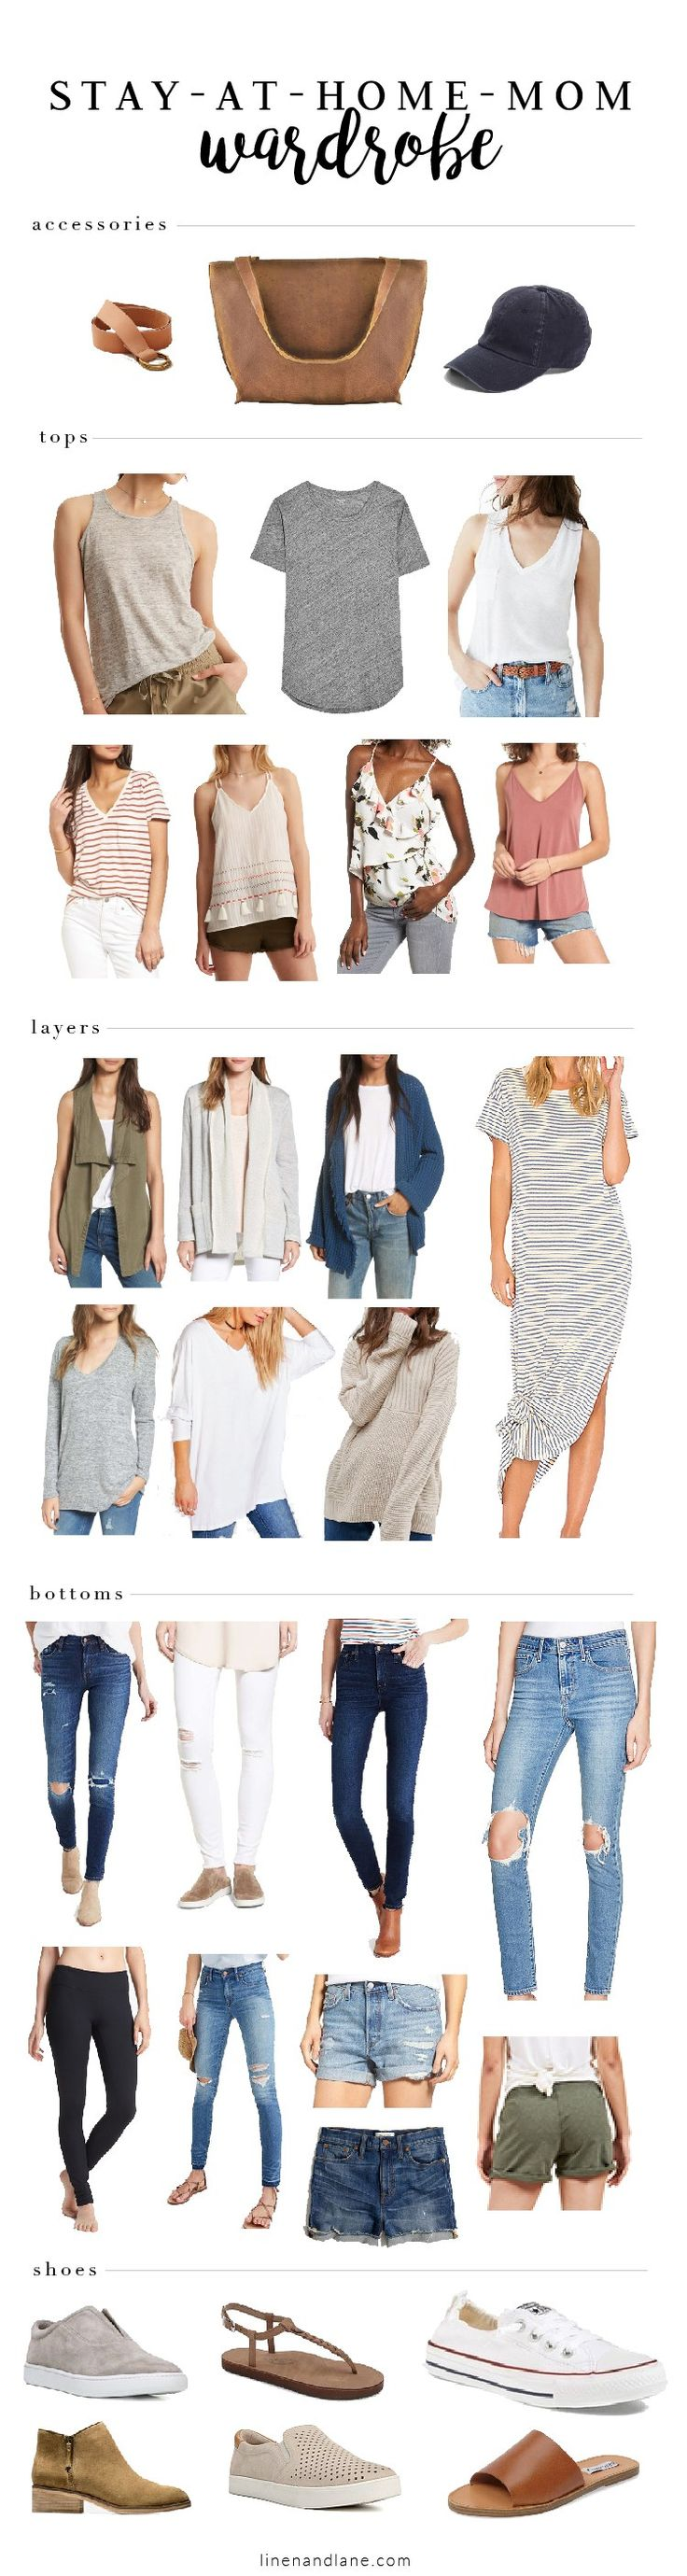 Cute stay-at-home-mom capsule wardrobe—22 basic pieces with endless outfit possibilities!